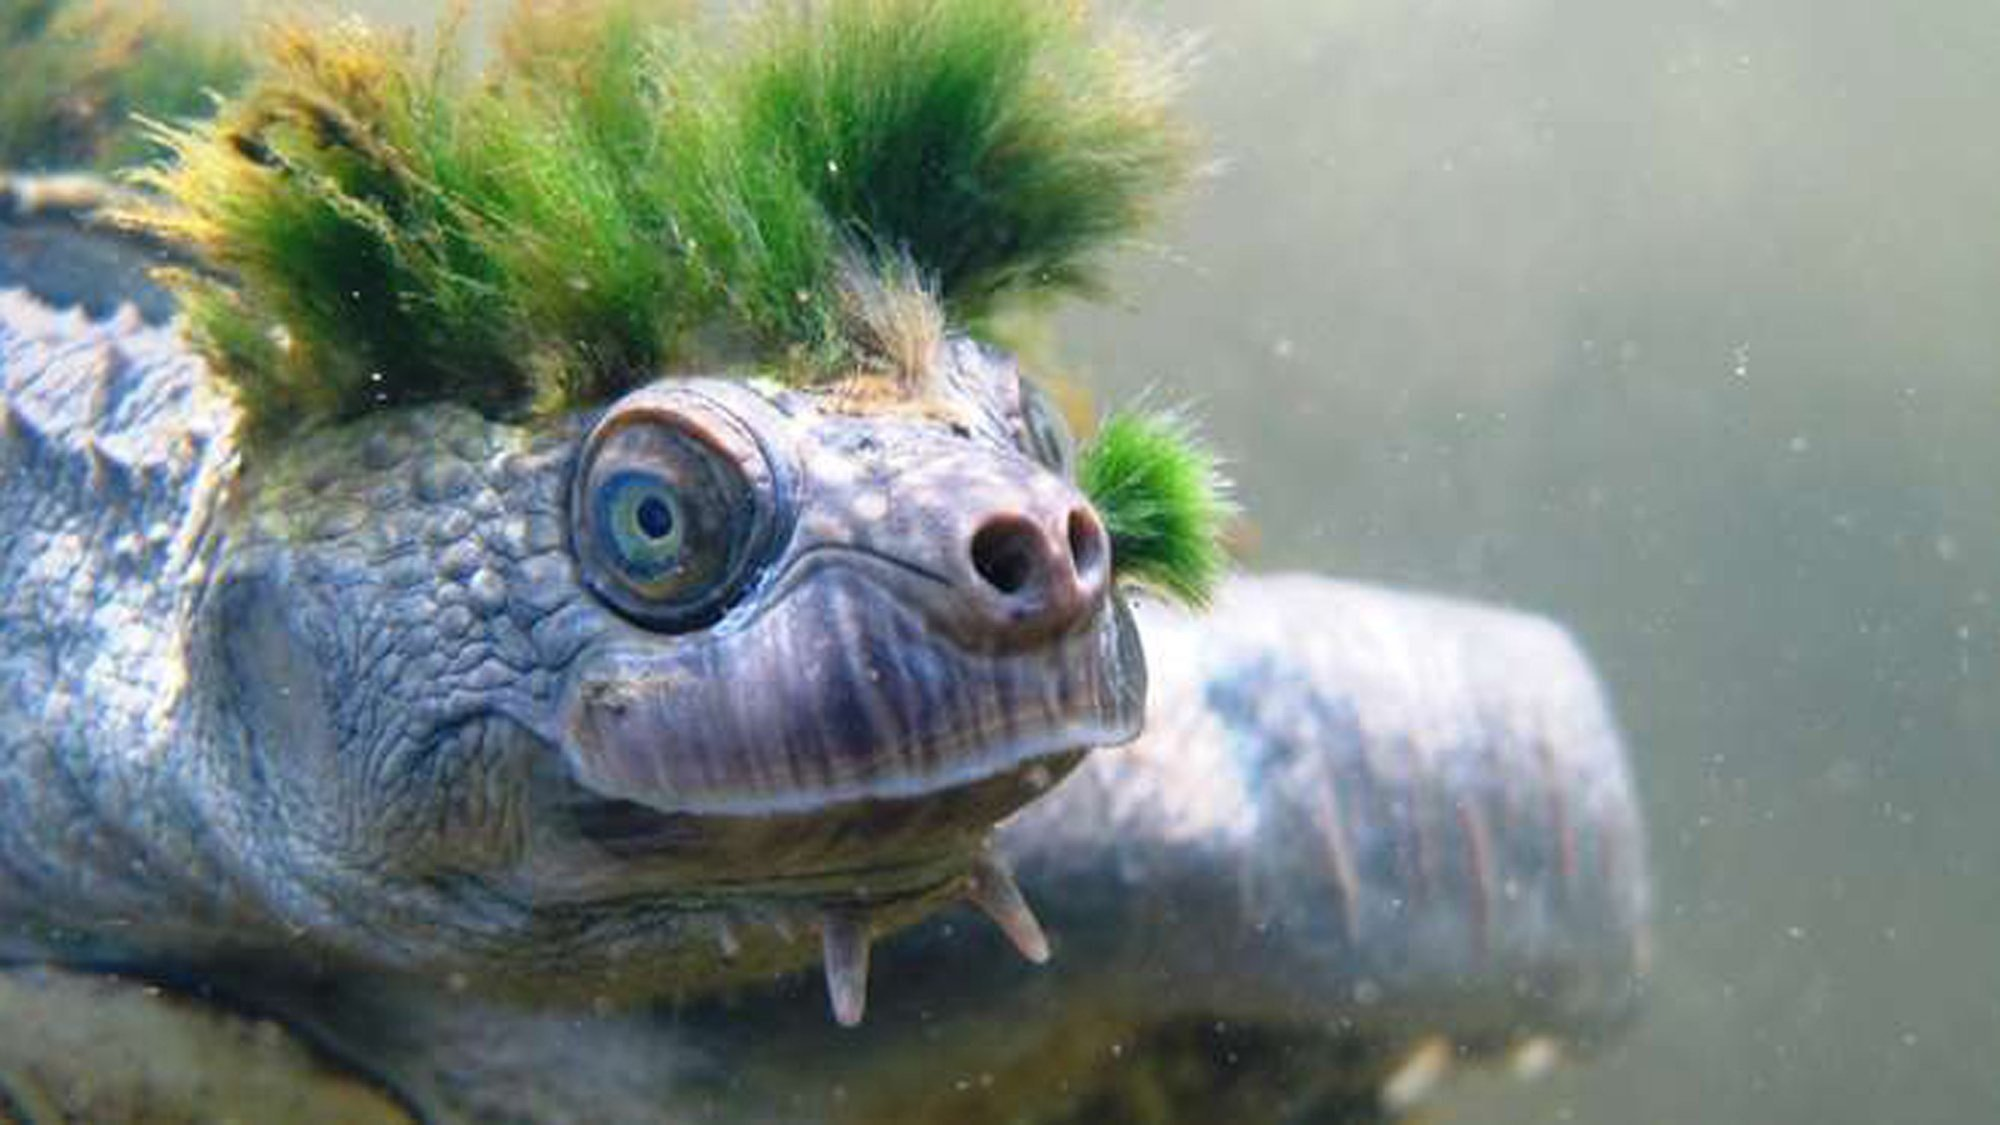 The Mary River turtle native to Queensland Australia and has a distinctive green punk-rock hairstyle two spikes under its chin and the ability to breathe through its genitals is on a new list of endangered reptiles